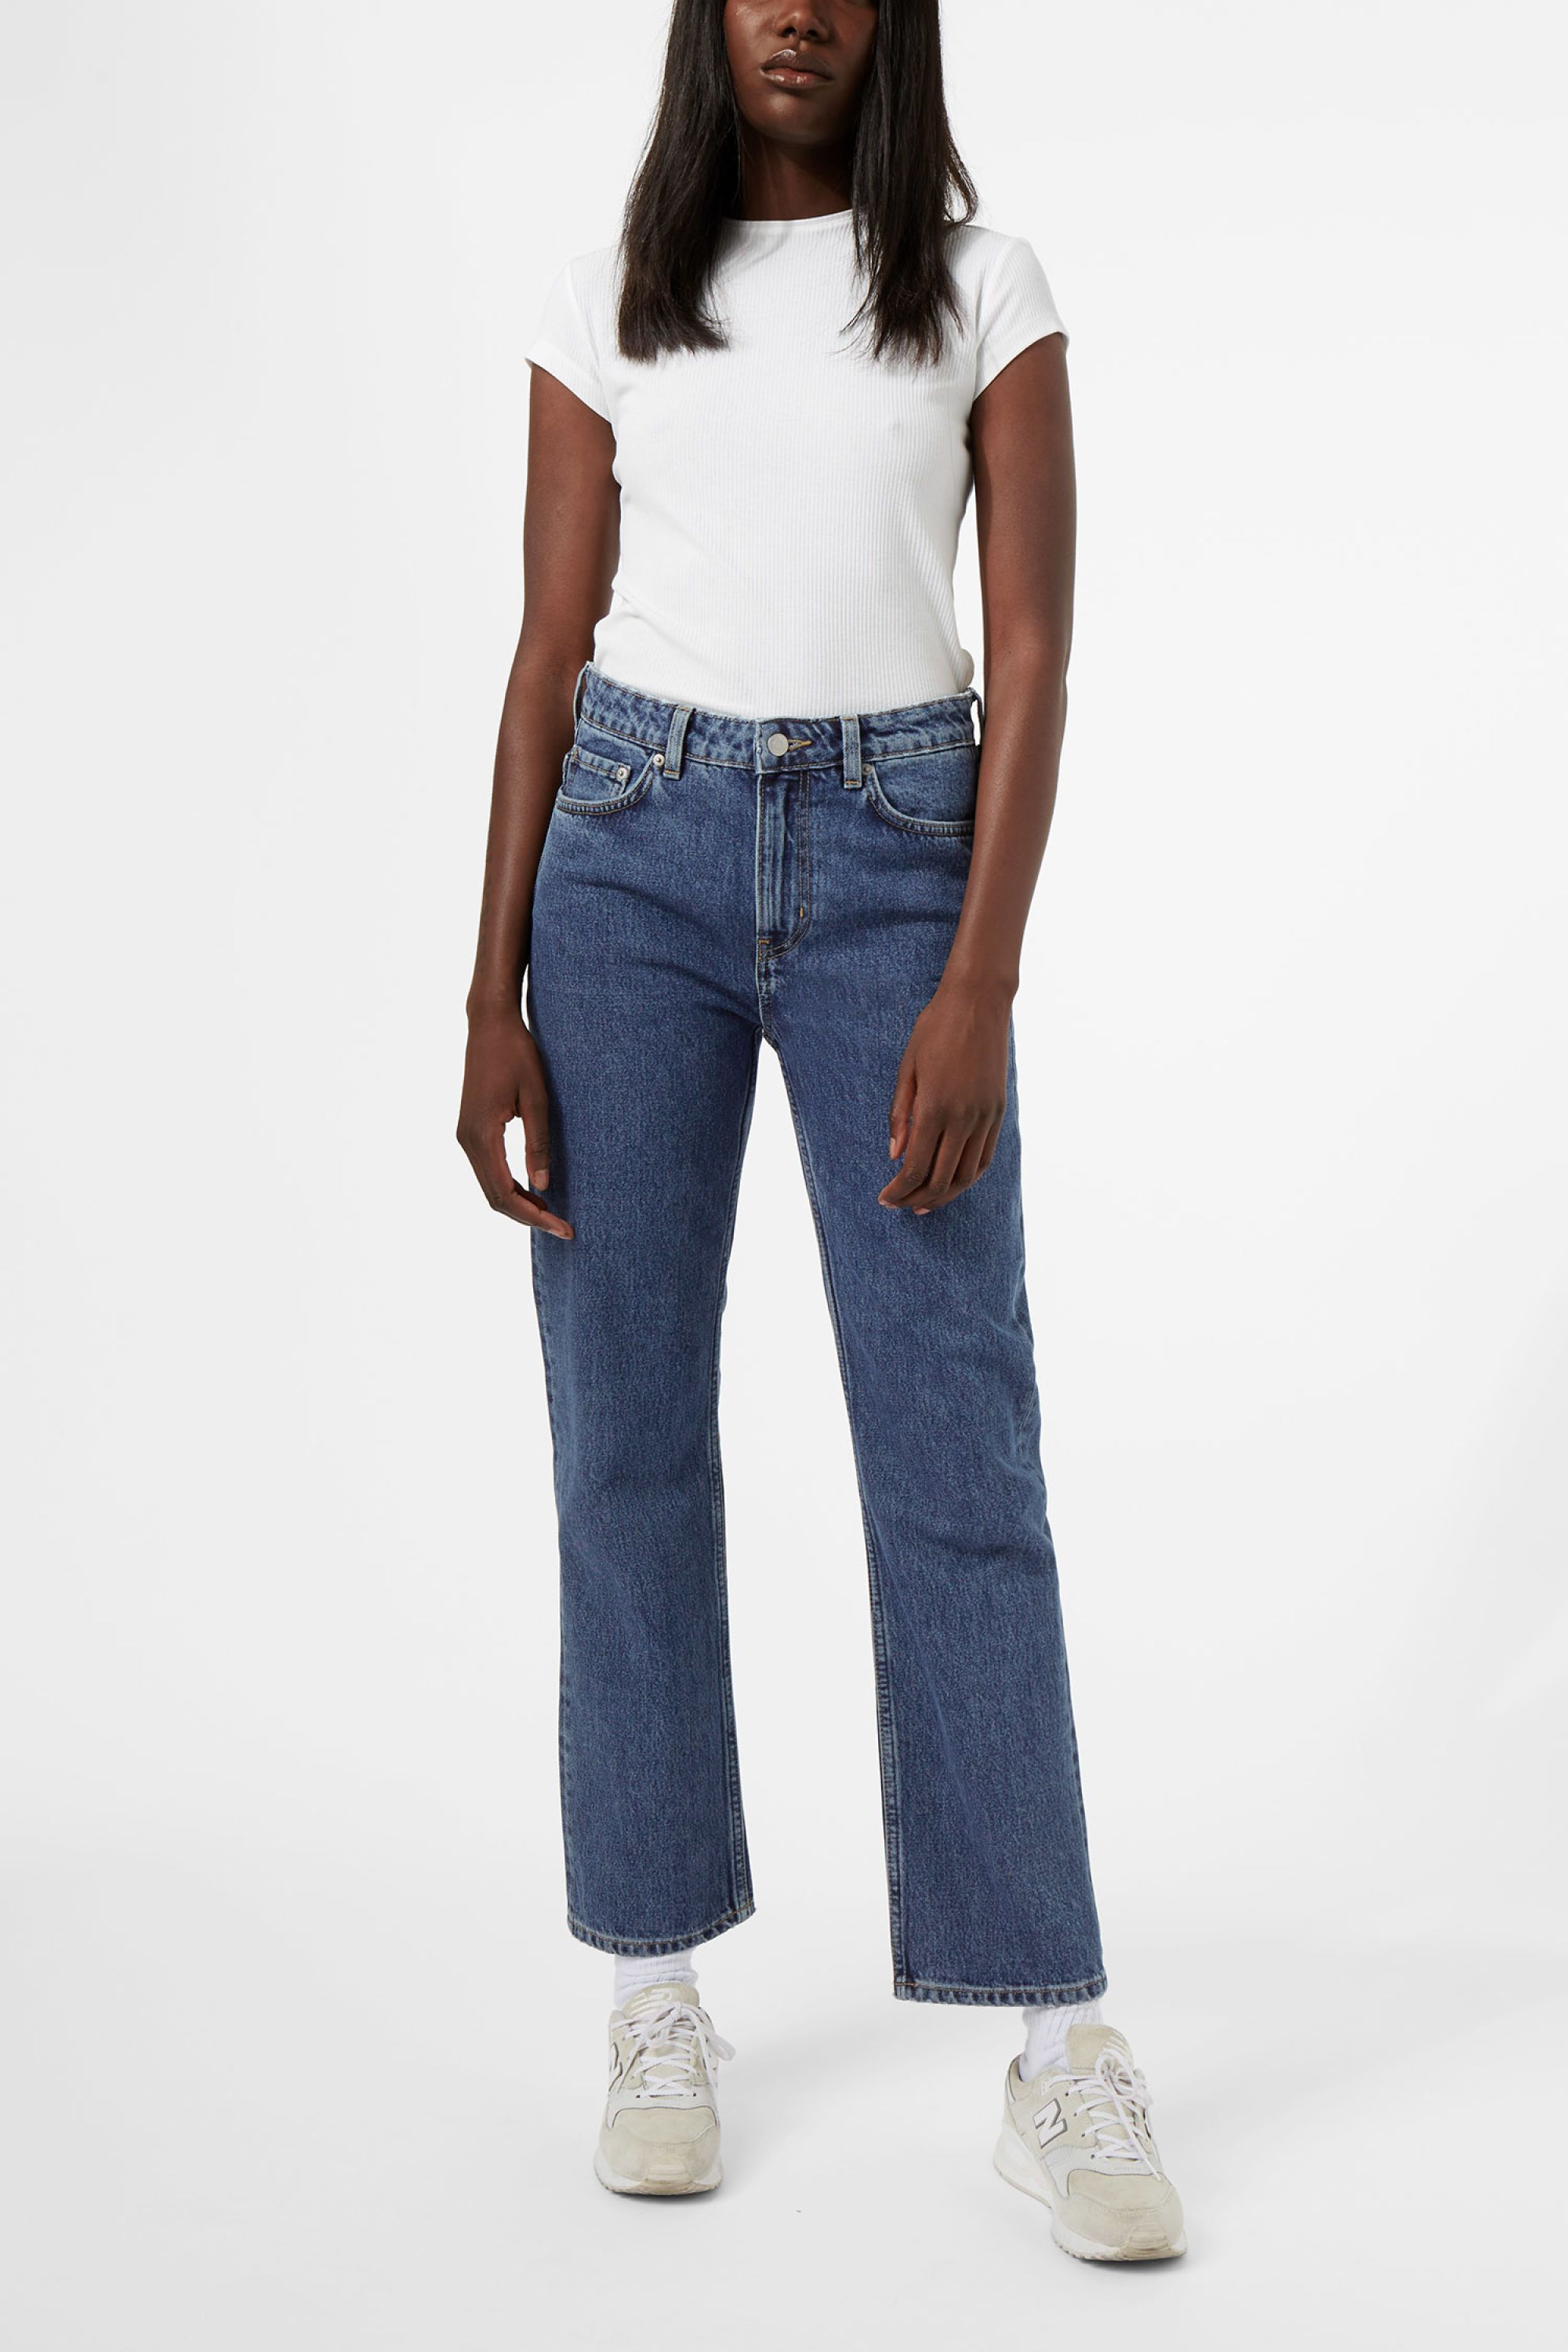 691dee04d0064 Voyage jeans have a comfort fit with a high waist and straight legs. Made  of a classic, heavy non-stretch denim. Voyage Standard come in a mid-blue  wash wi